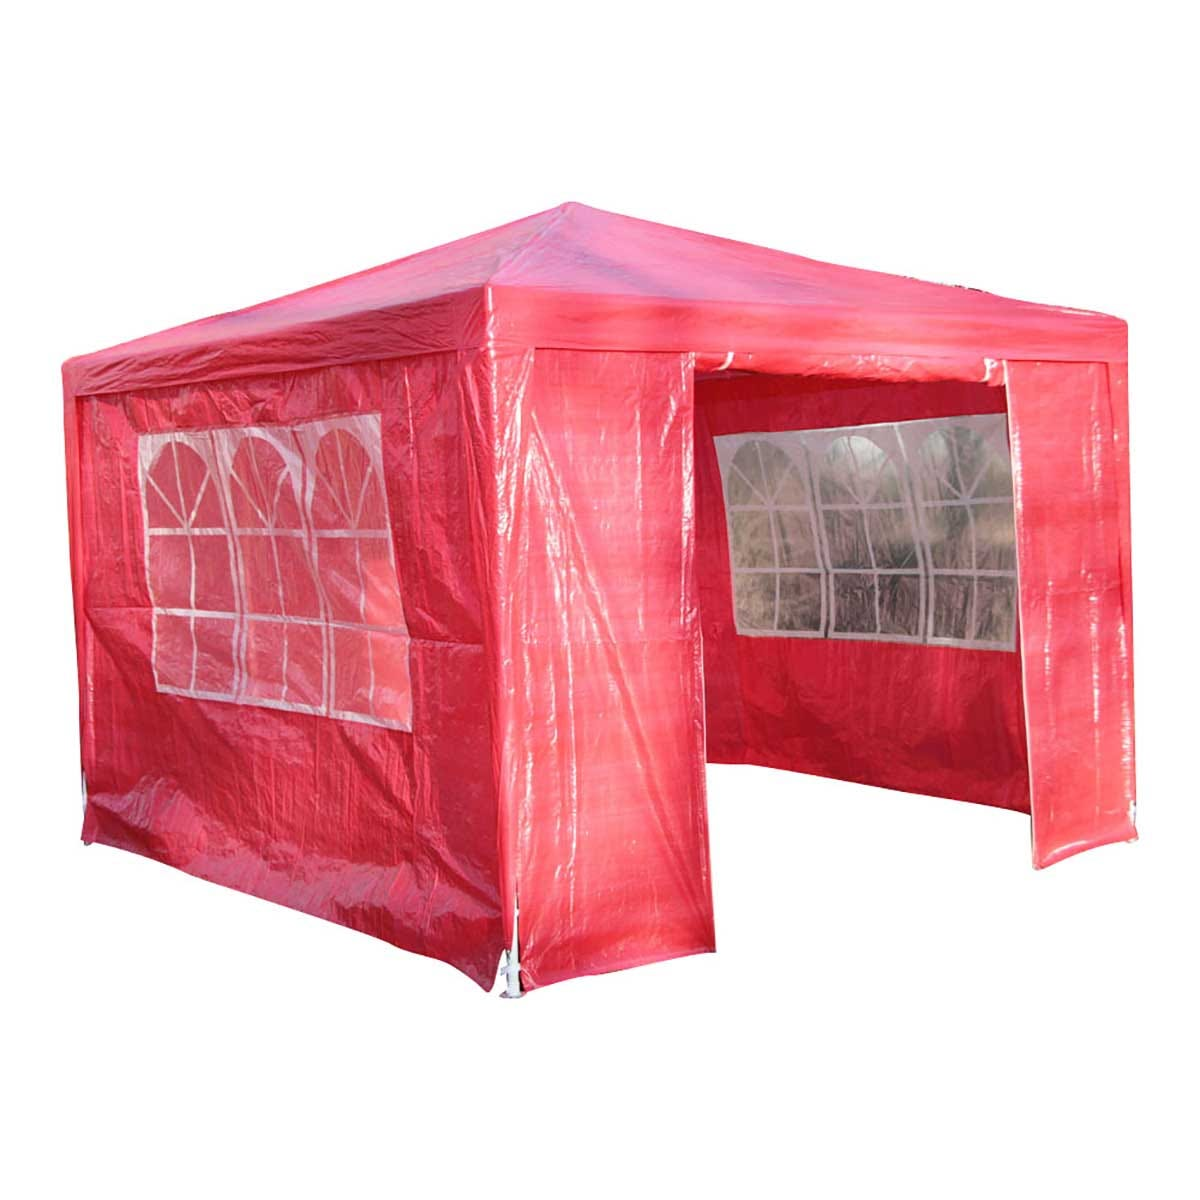 Airwave 3m x 3m Value Party Tent Gazebo - Red